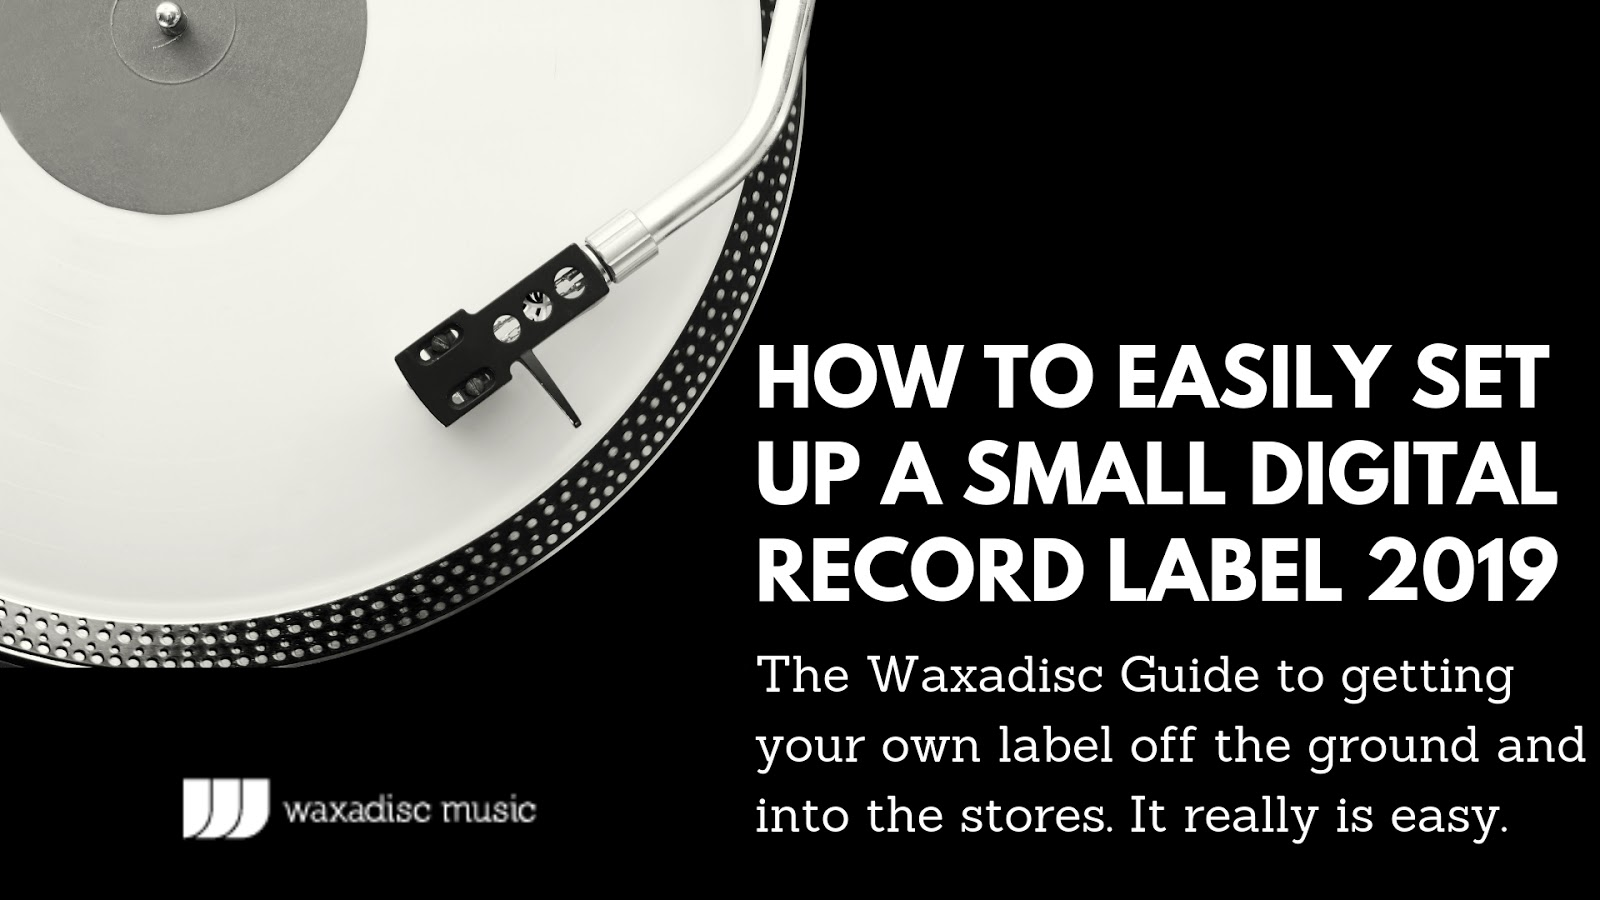 How to create and run a digital record label in 2019 - Waxadisc